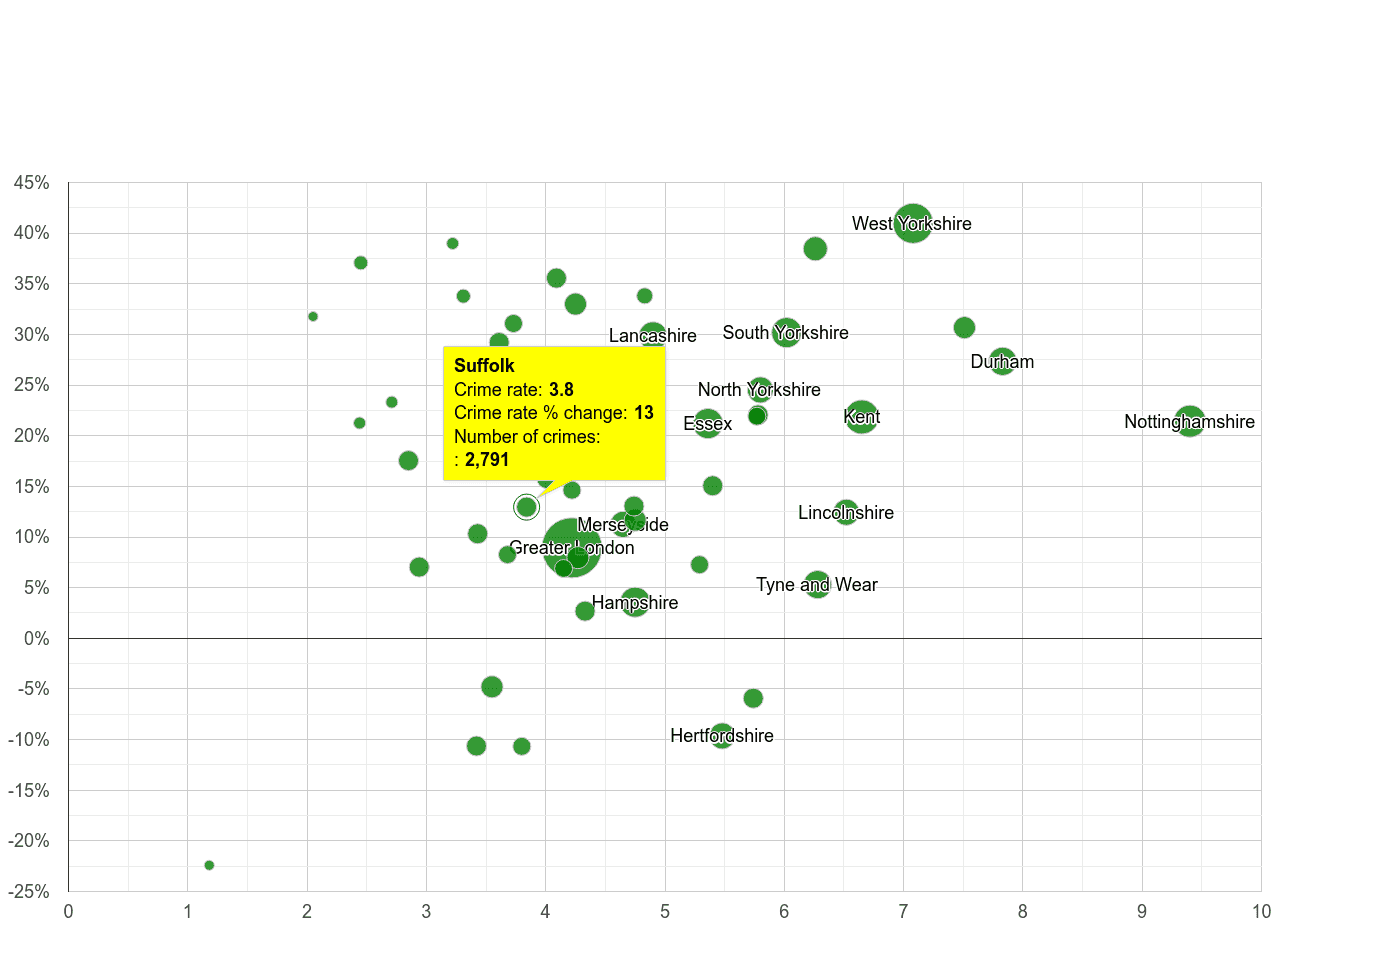 Suffolk shoplifting crime rate compared to other counties